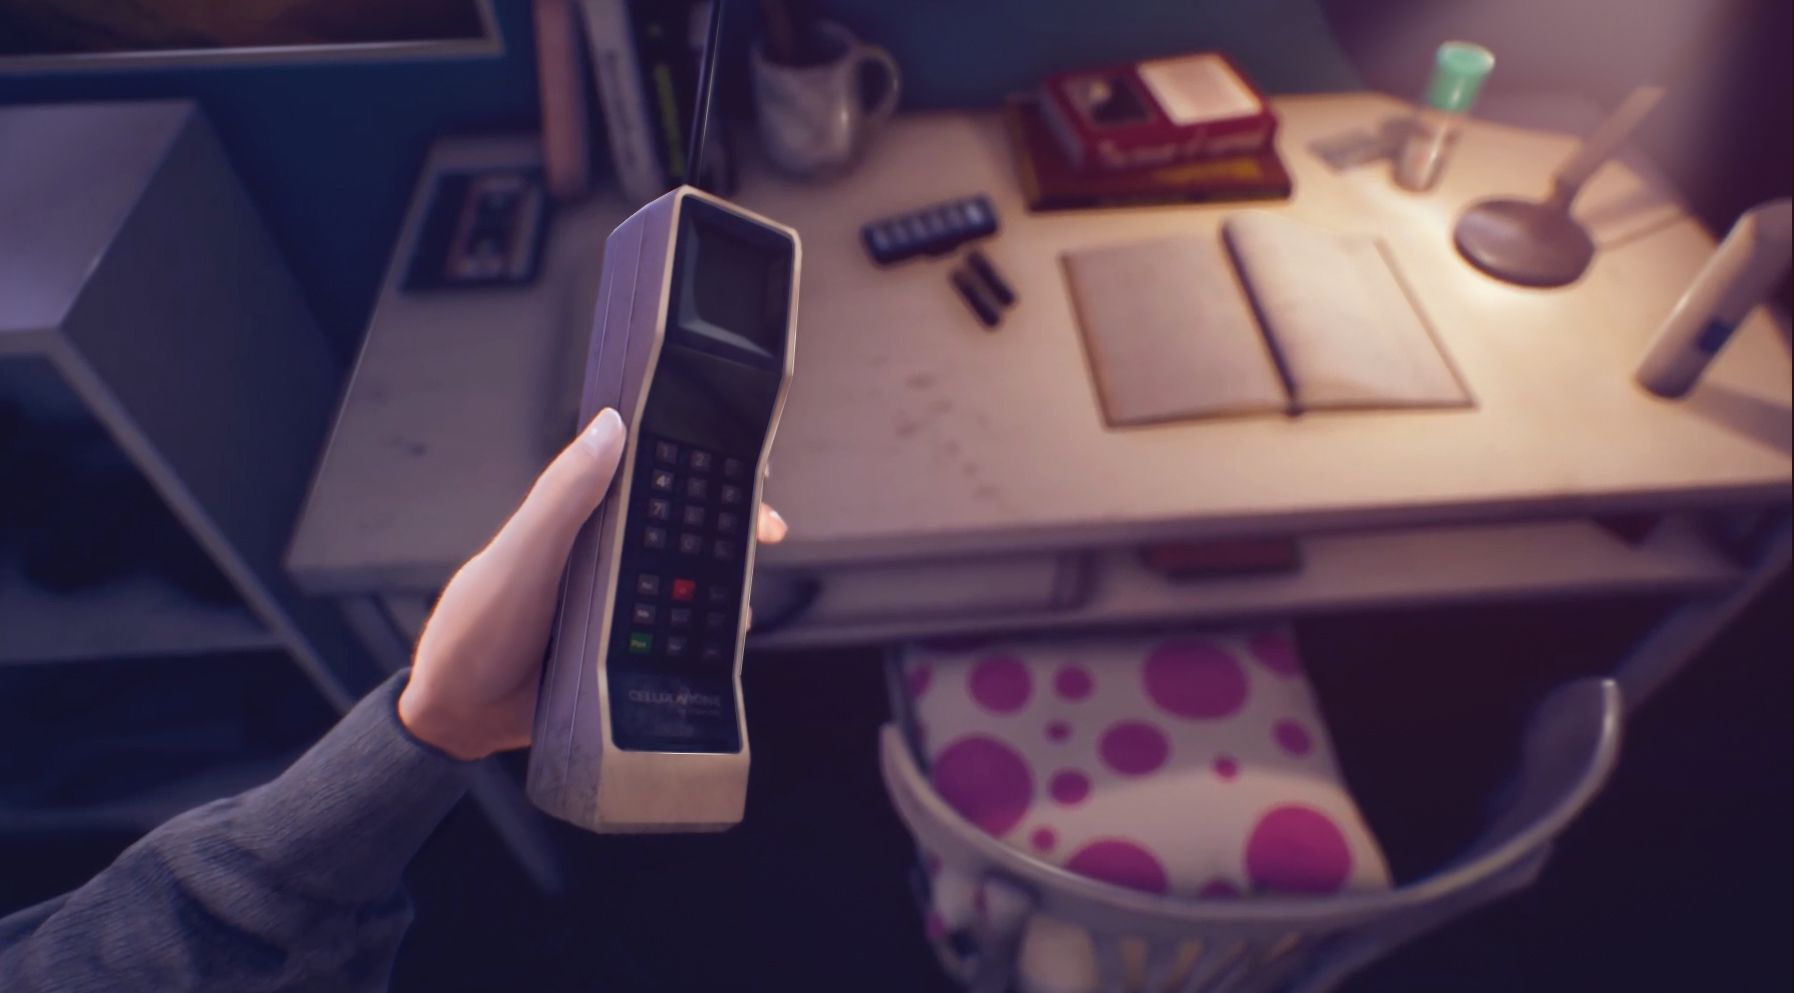 An old phone in the Suicide of Rachel Foster